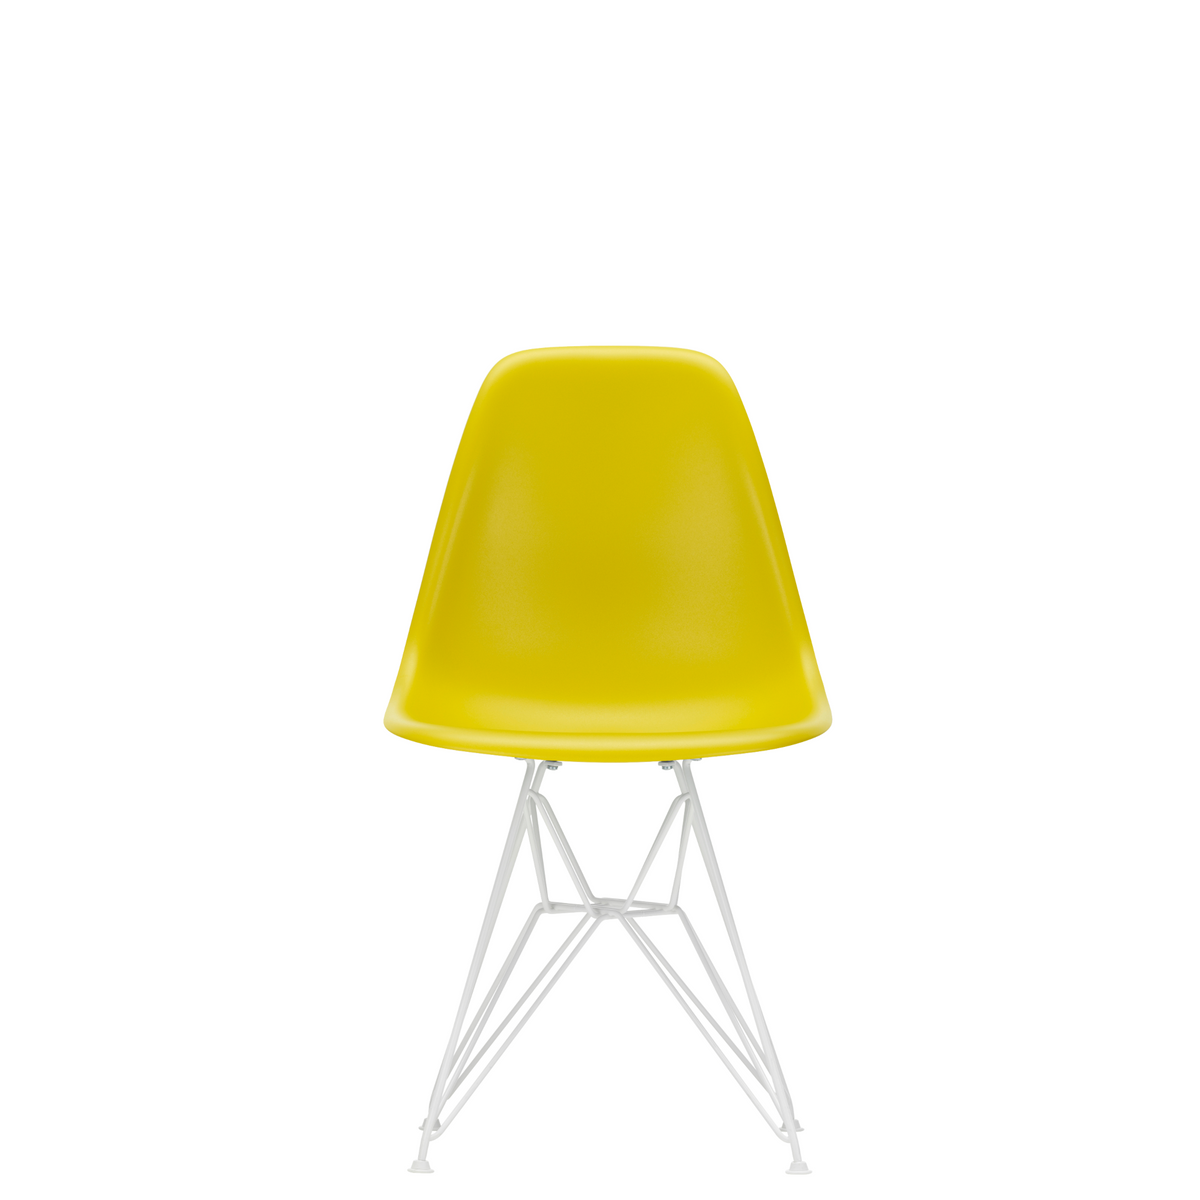 Vitra Eames Plastic Side Chair DSR Powder Coated for Outdoor Use. Mustard Shell, White Powdercoated Base